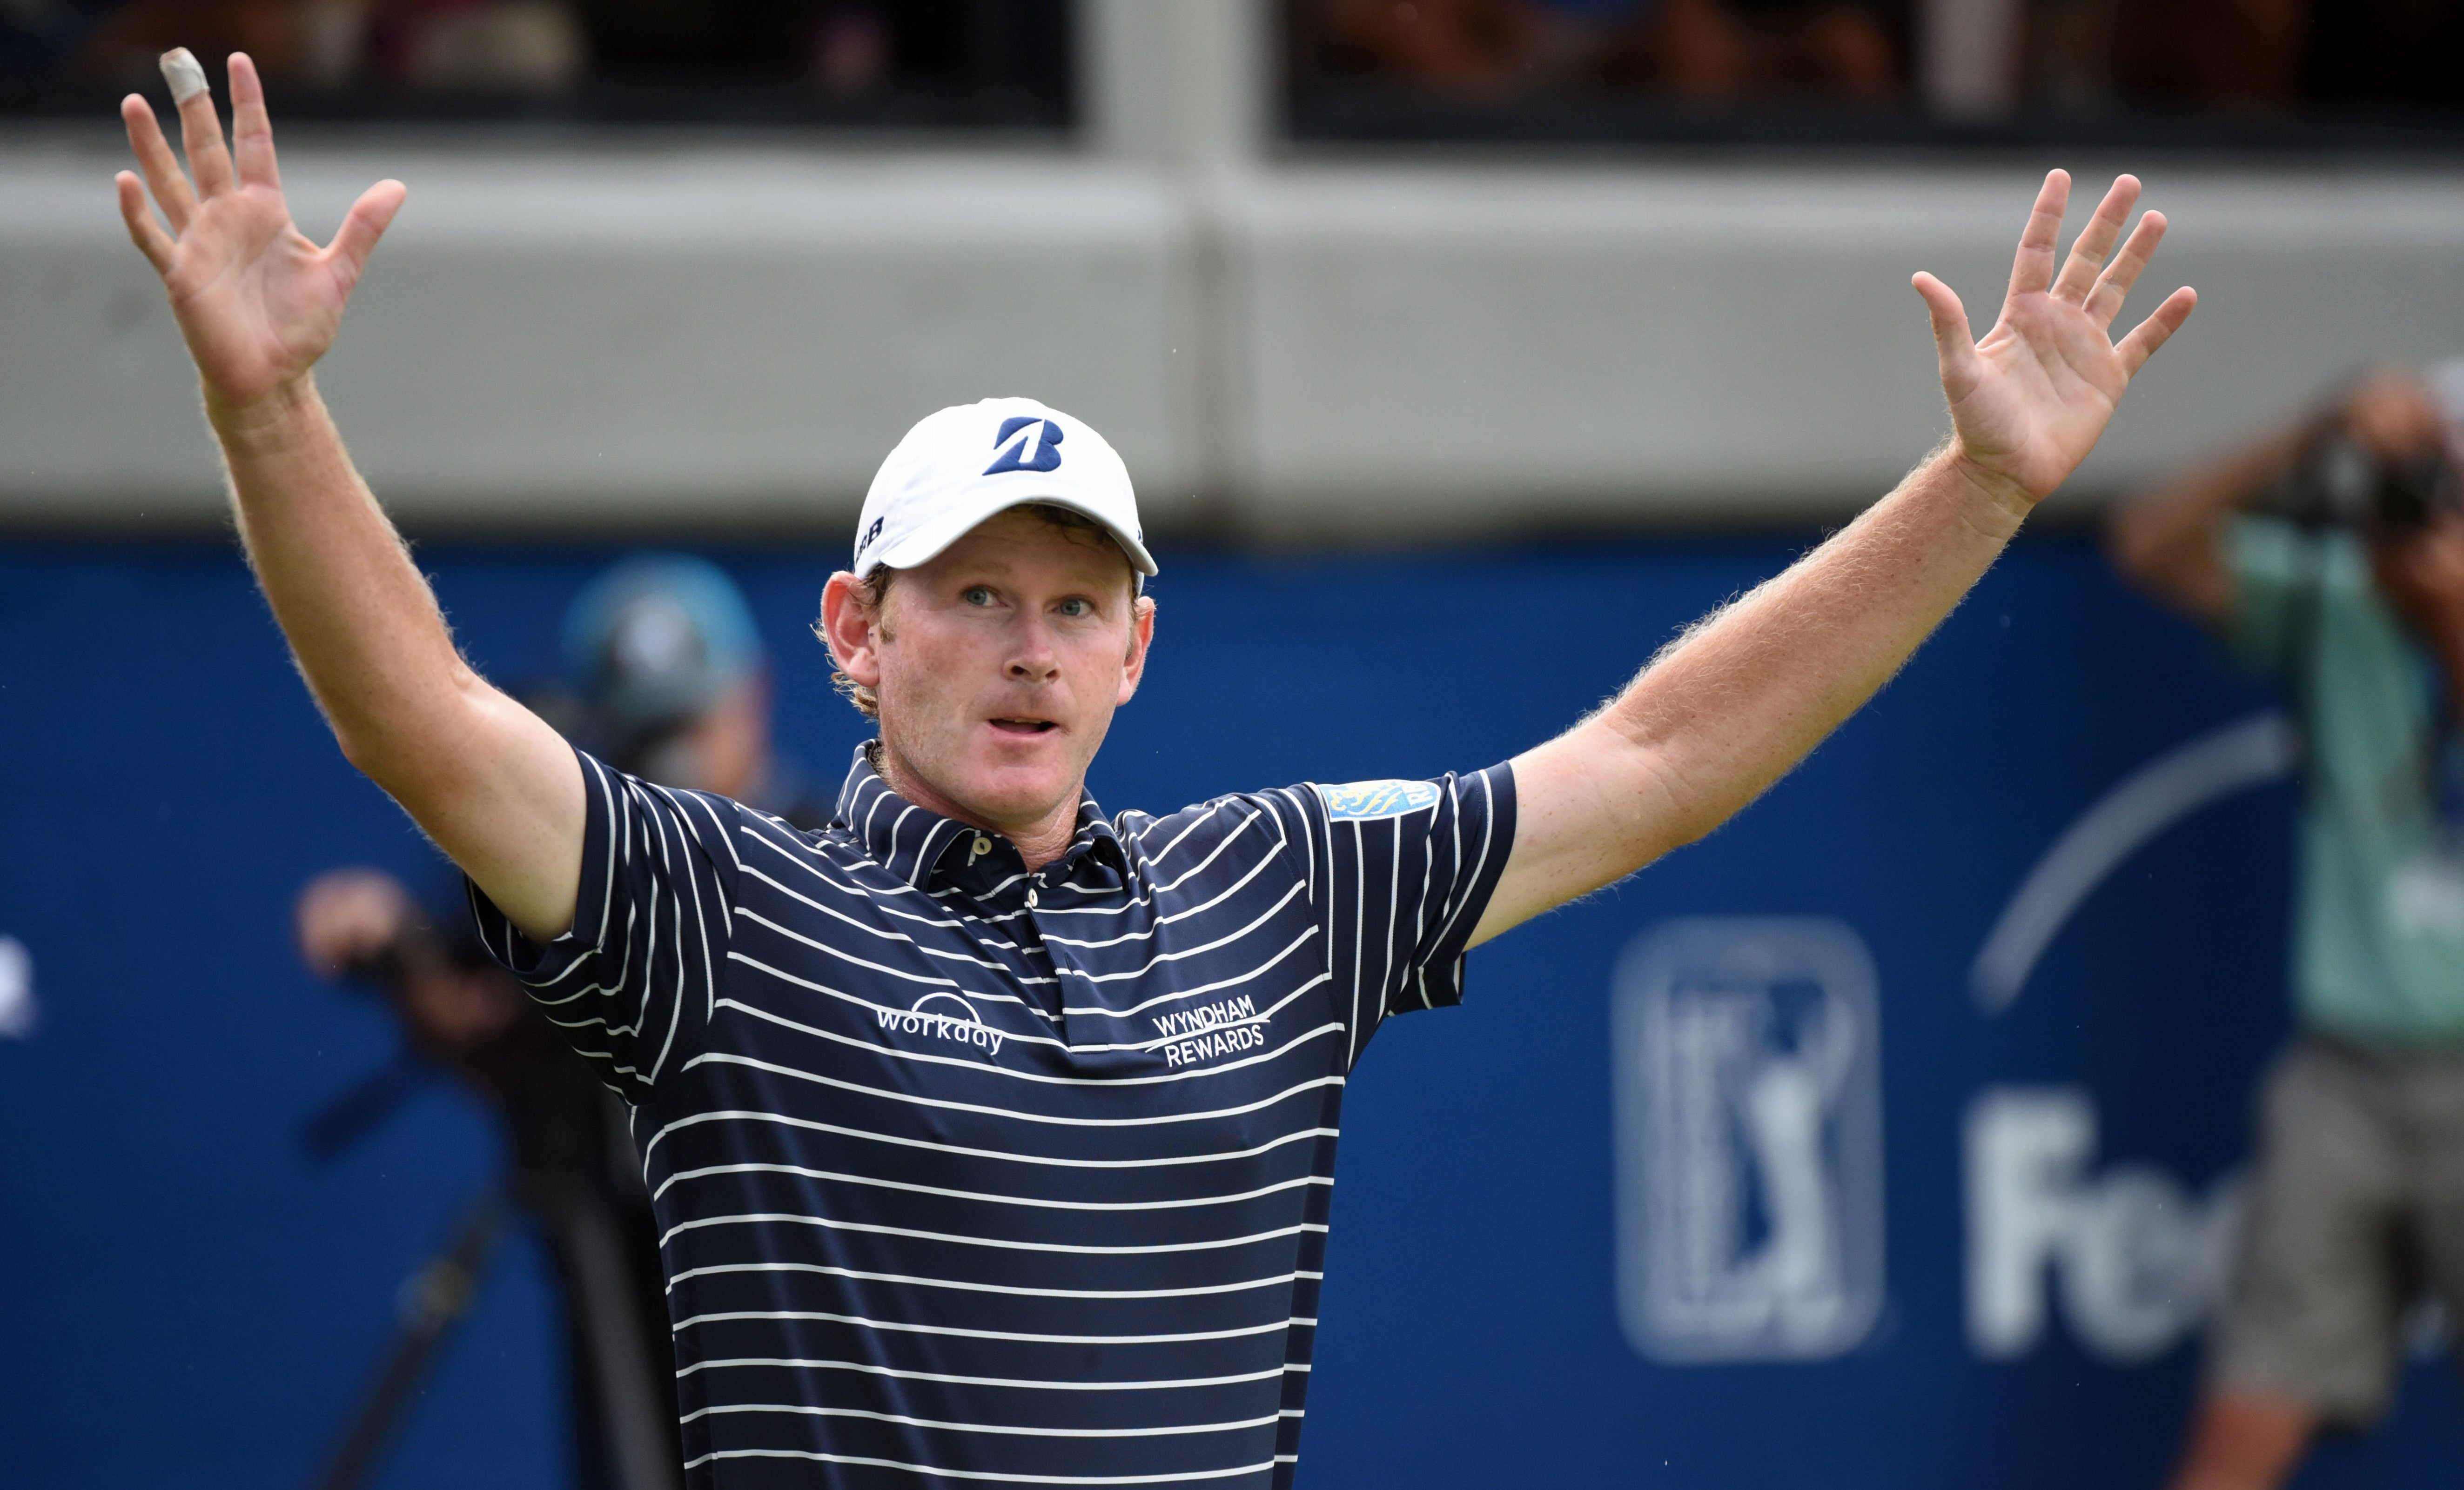 Snedeker stays on top at Wyndham Championship